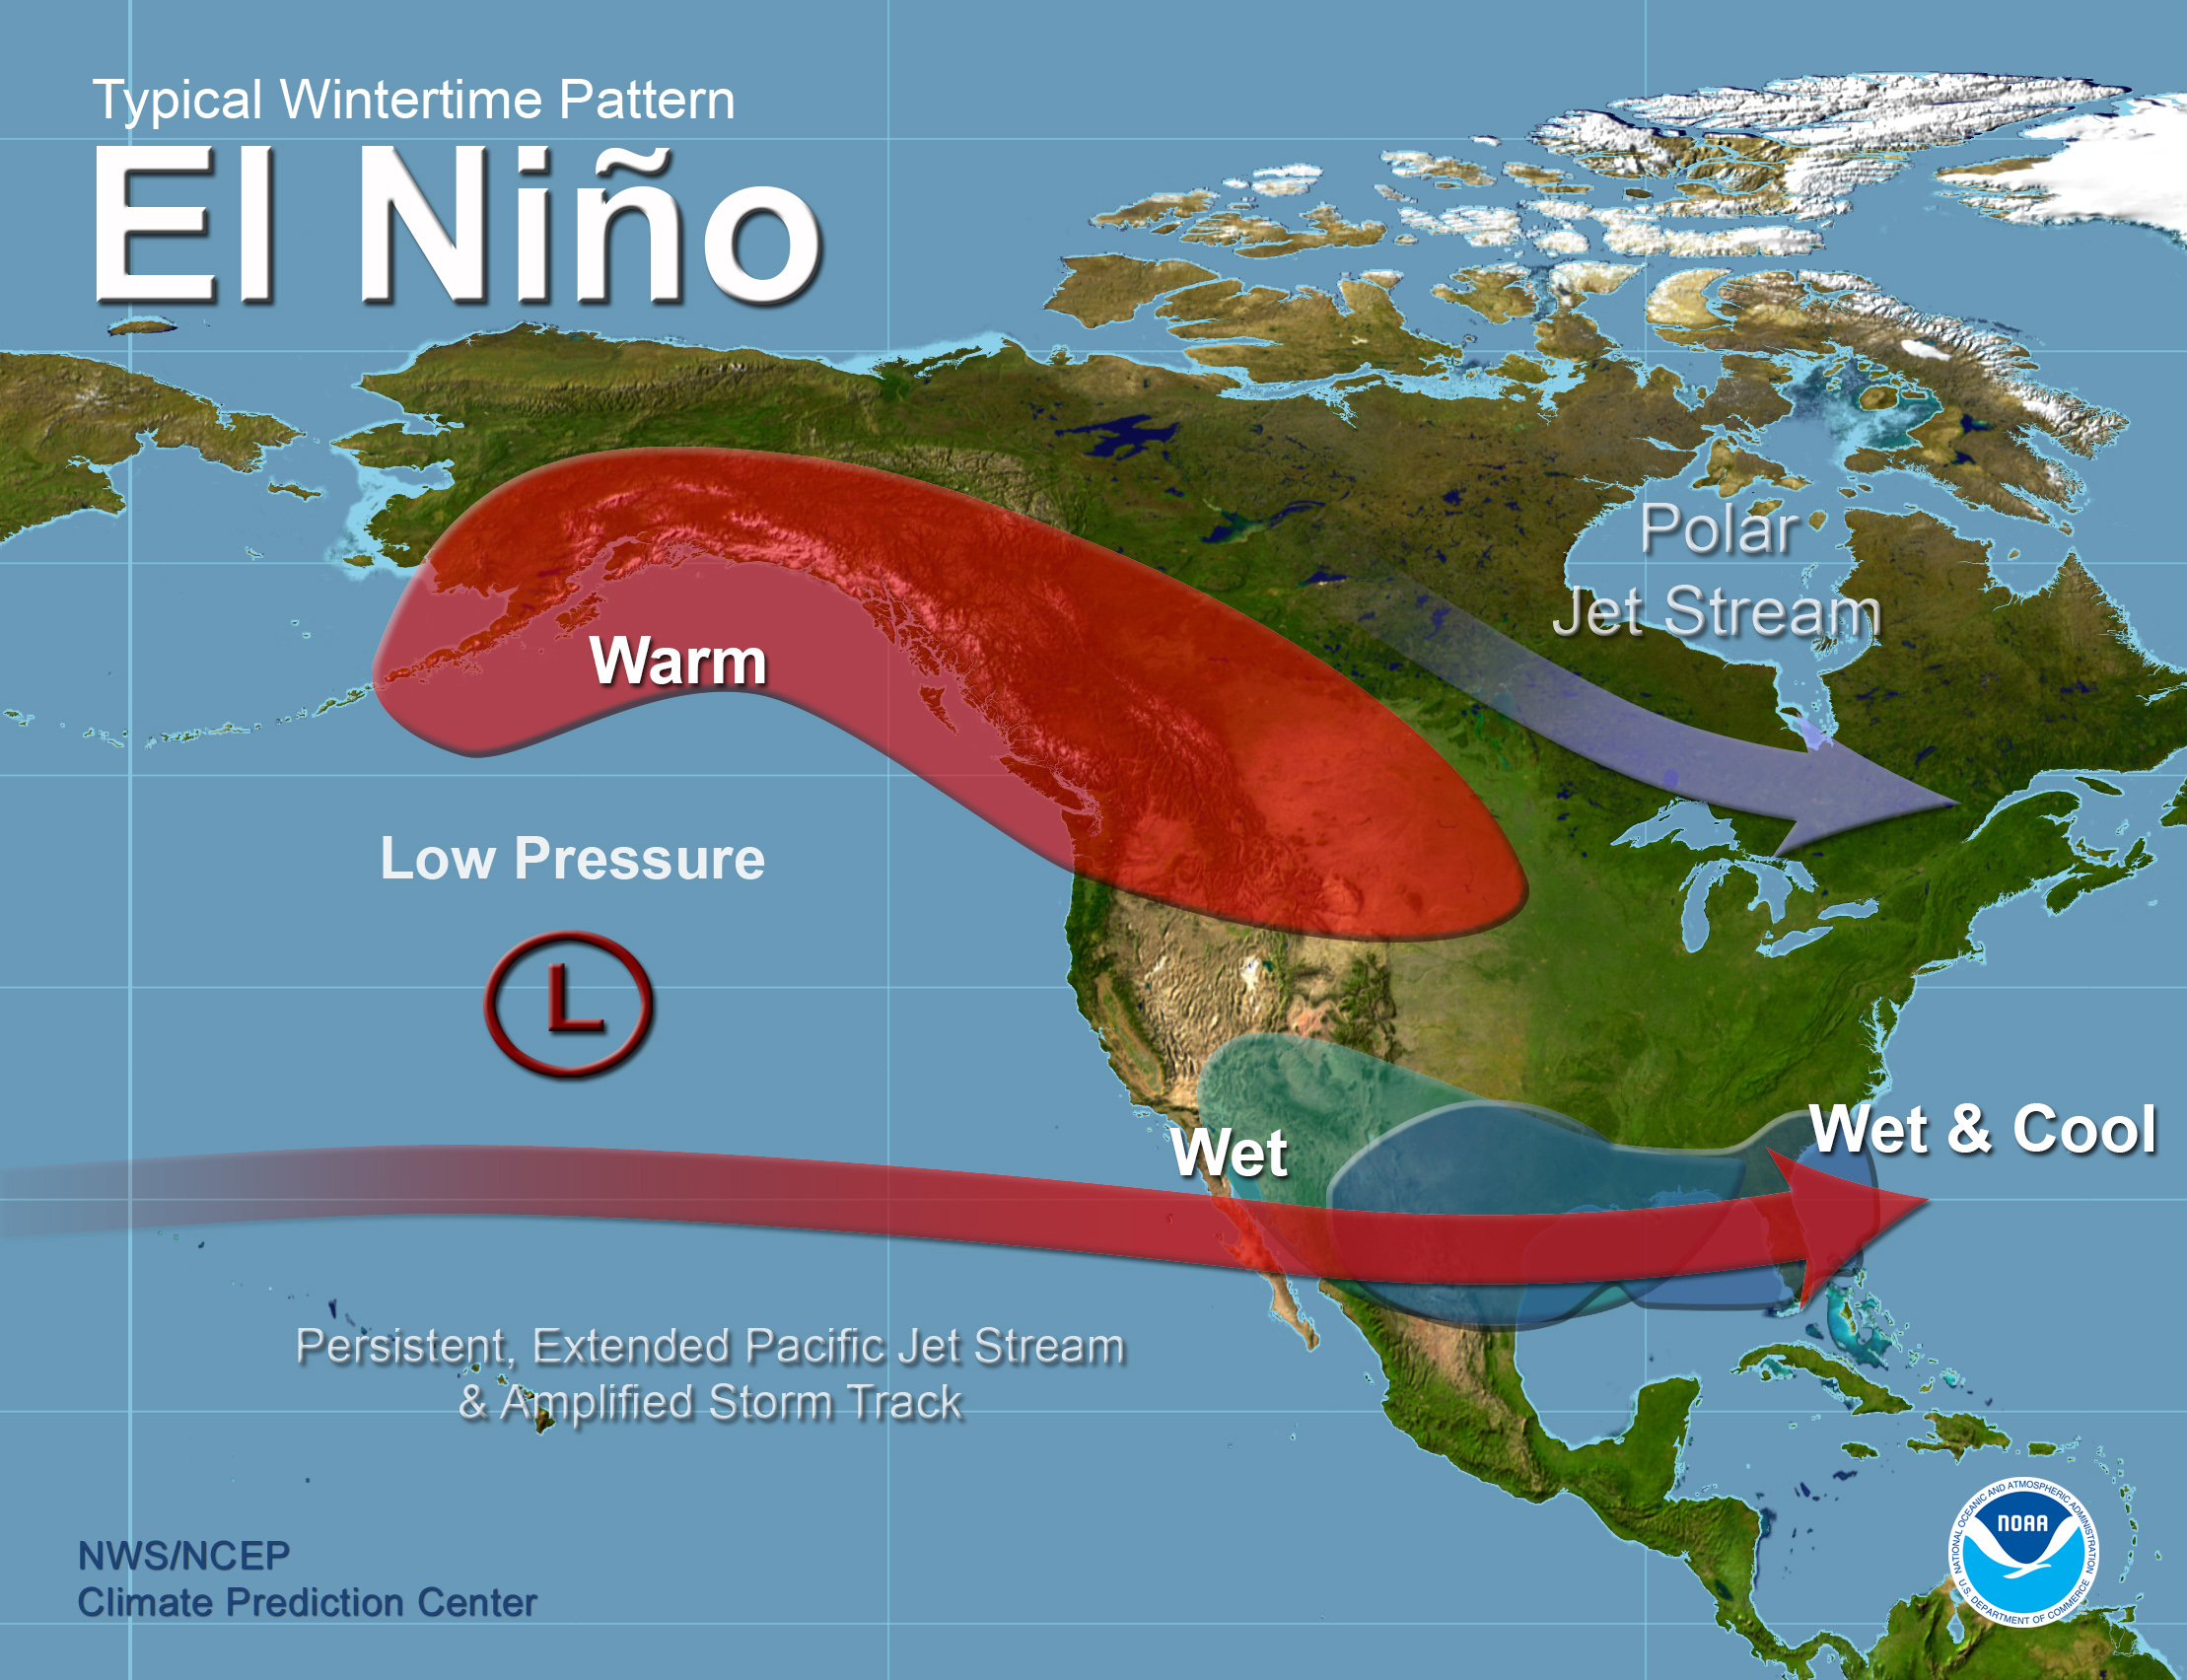 El Niño Related Winter Features Over North America